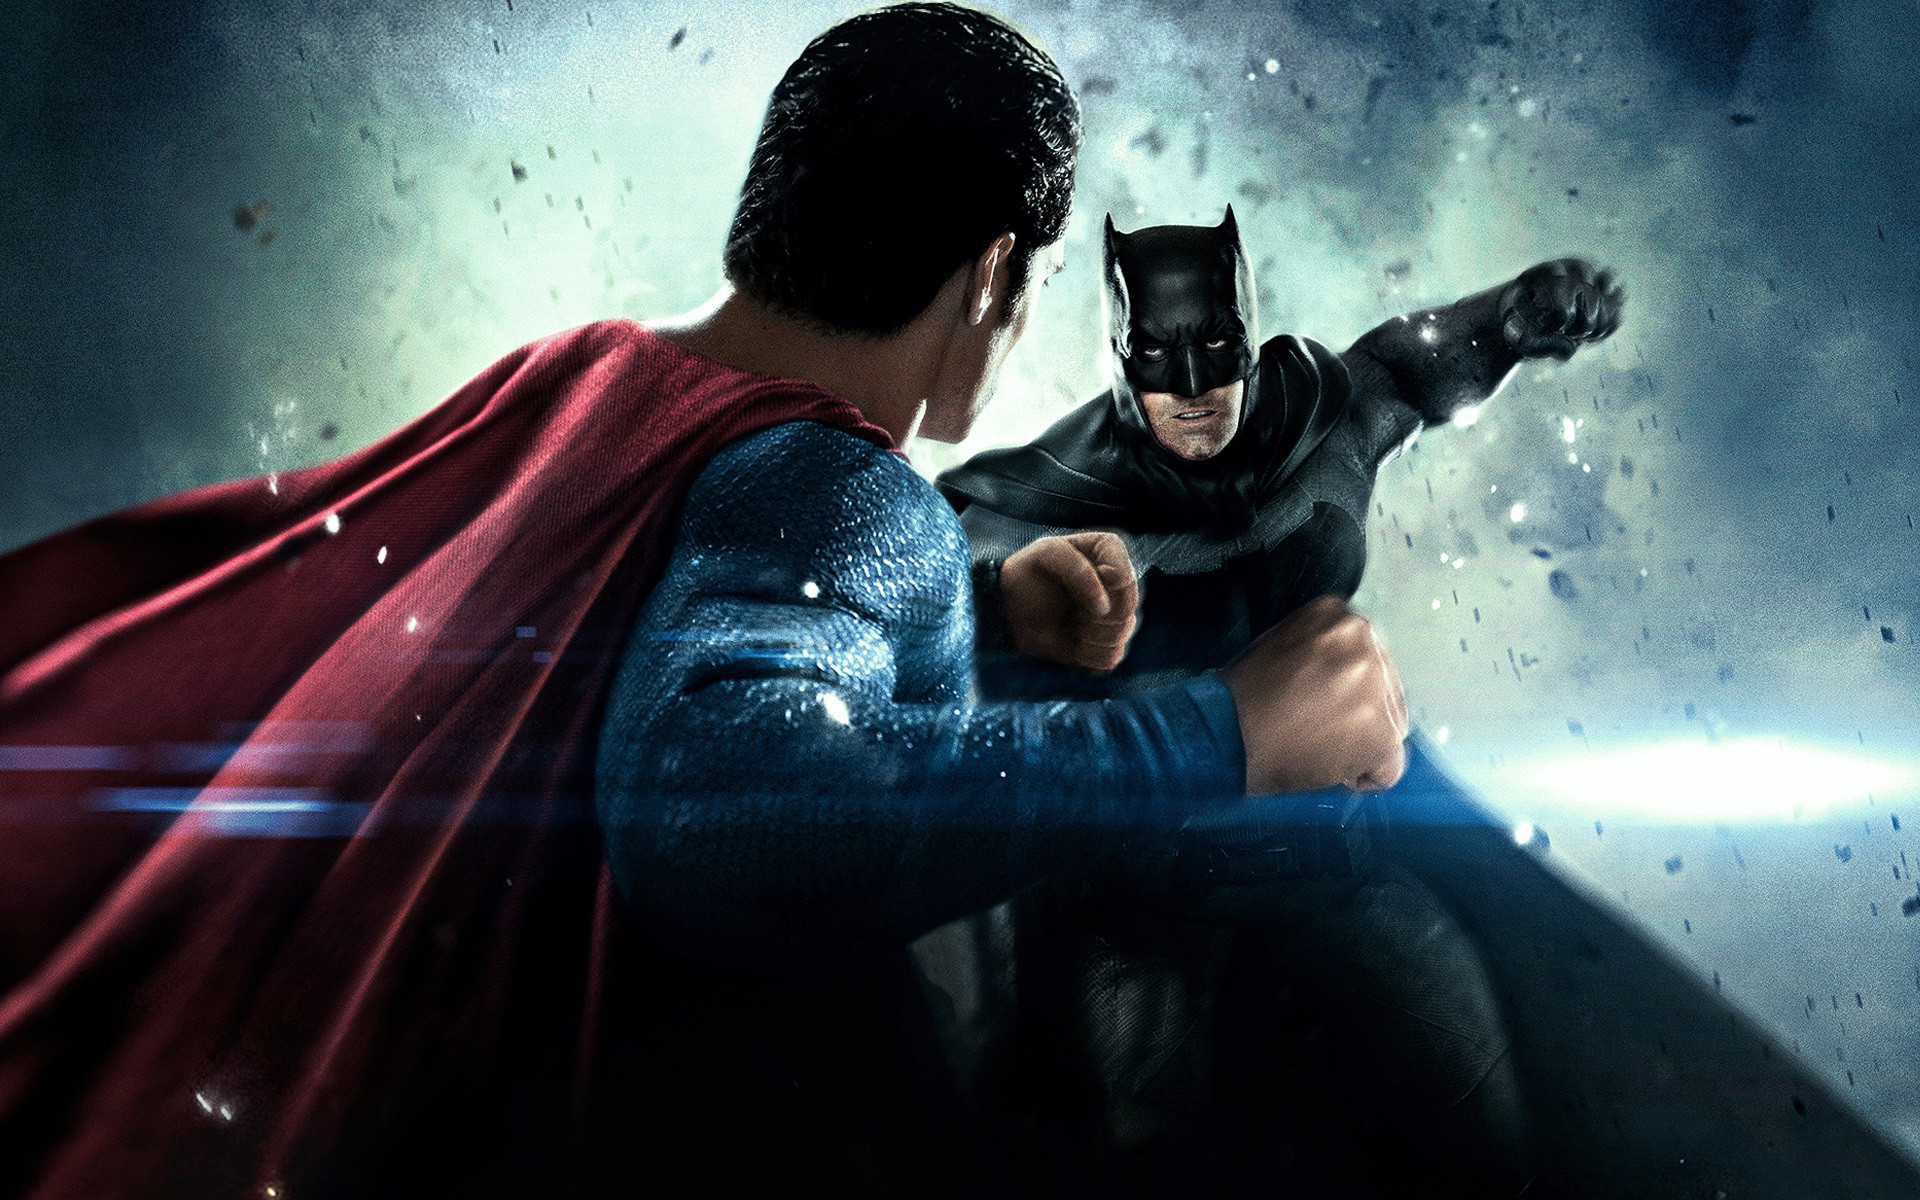 1920x1200 Batman v Superman 2016 - This HD Batman v Superman 2016 wallpaper is based  on Batman v Superman: Dawn of Justice N/A. It released on N/A and starri…